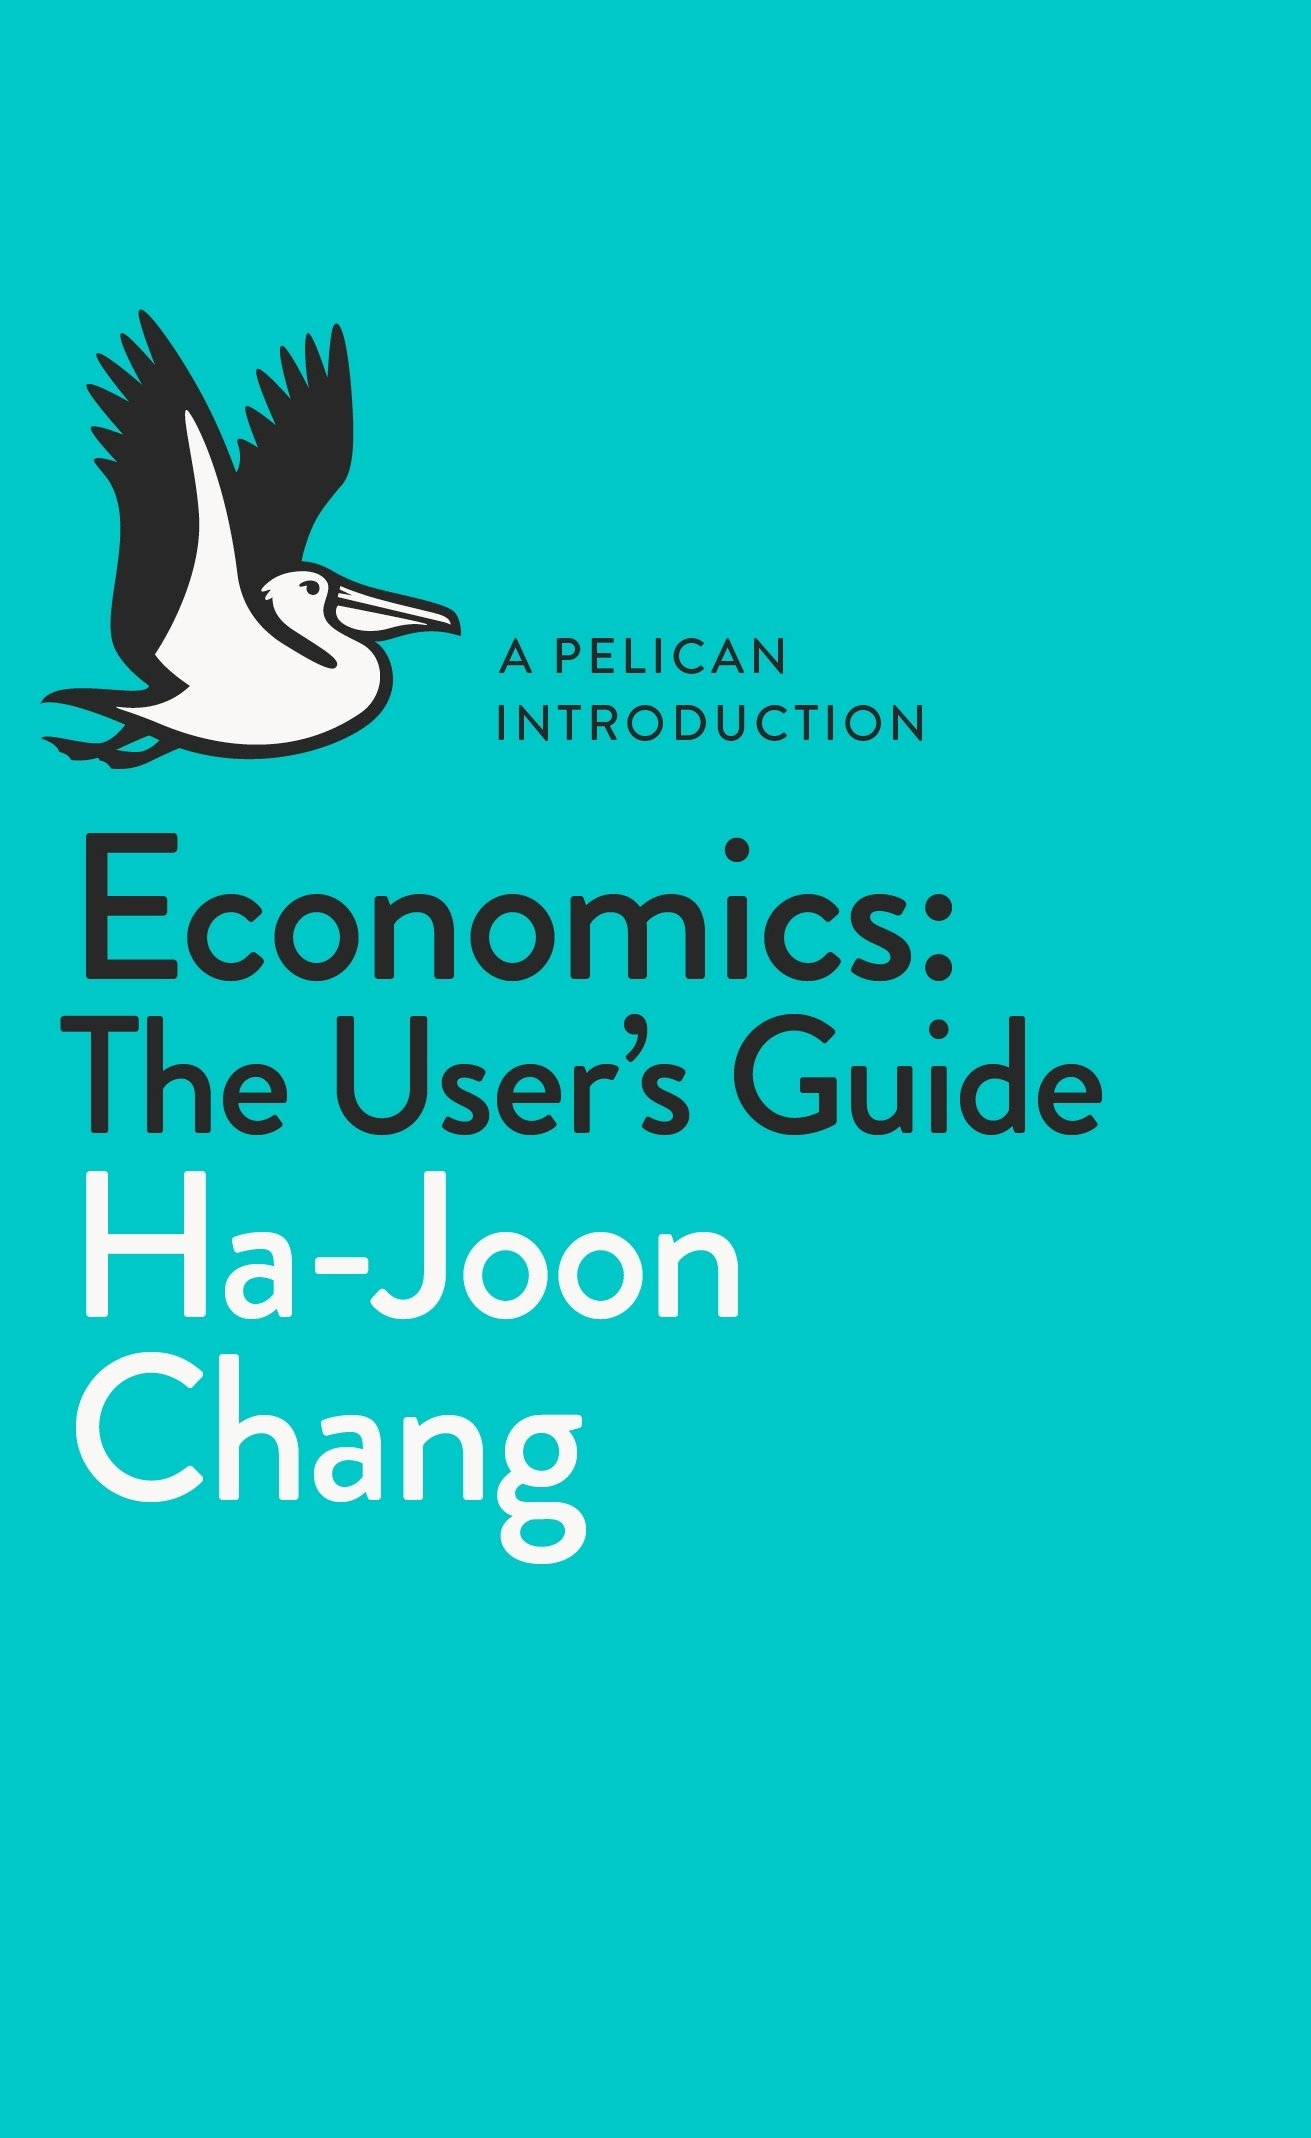 Image result for ha joon chang economics user's guide